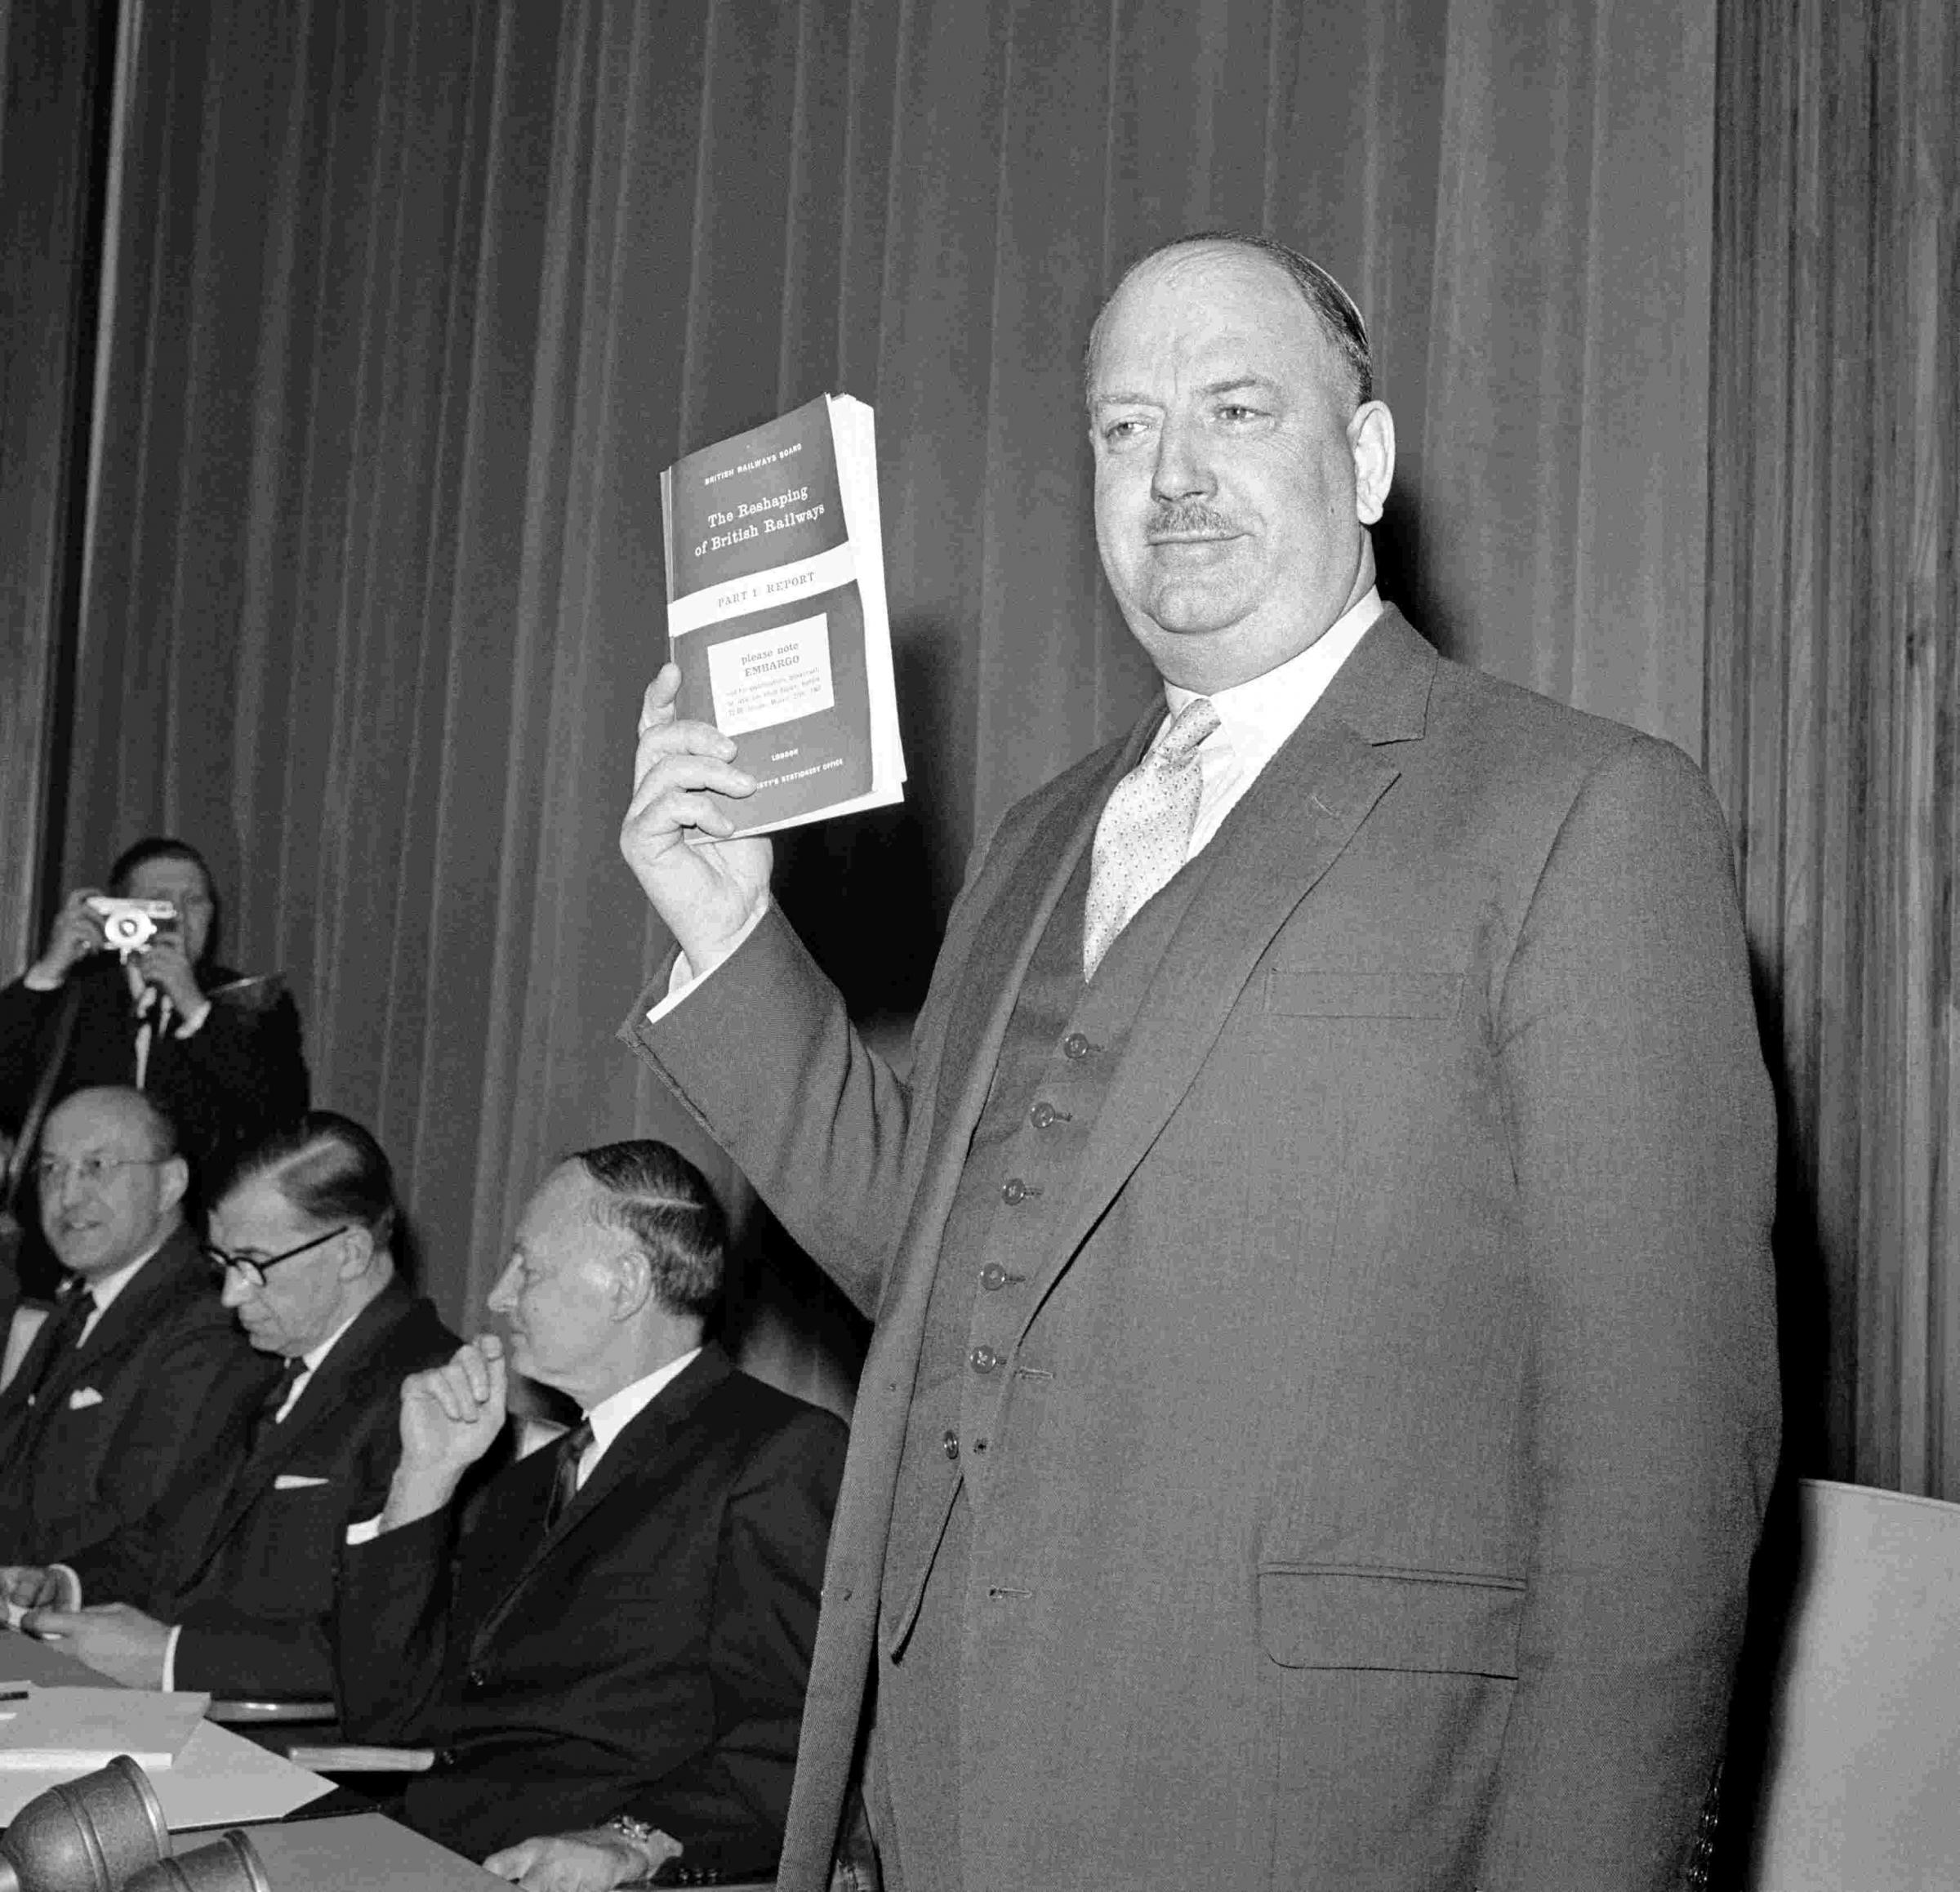 File photo dated 27/03/63 of Dr Richard Beeching holding aloft a copy of the pamphlet 'The Reshaping of British Railways', in Marylebone, London. This month marks the 50th anniversary of Dr Beeching's infamous report which gave the English lan